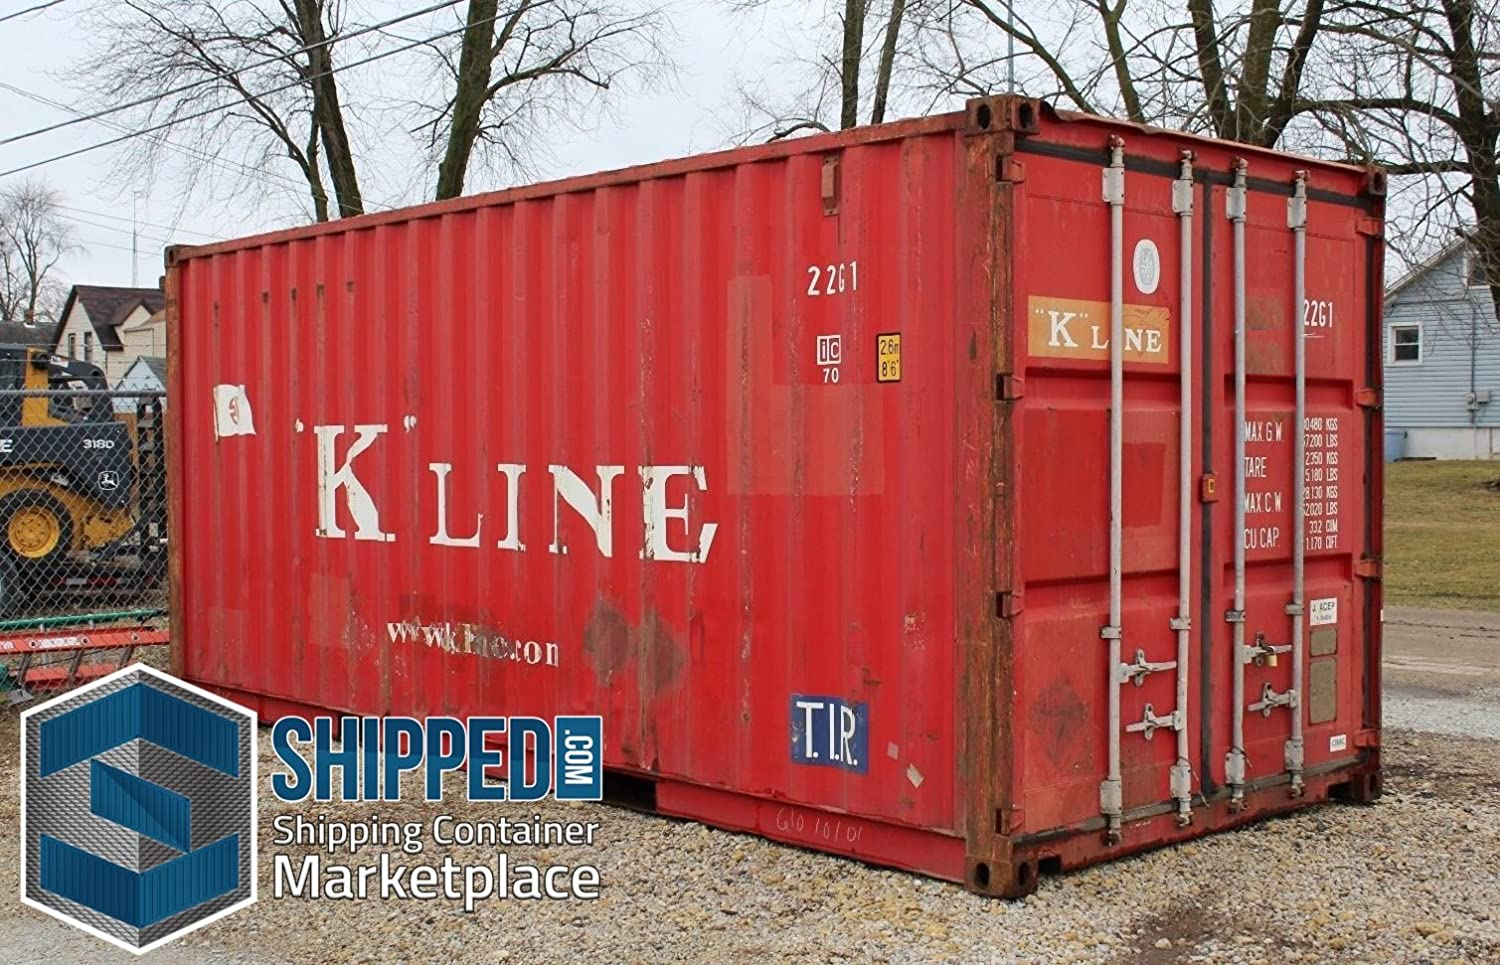 New Used Shipping Containers For Sale At Shipped Com >> Shipped Com Offers 20 Ft Used Wind And Water Tight Shipping